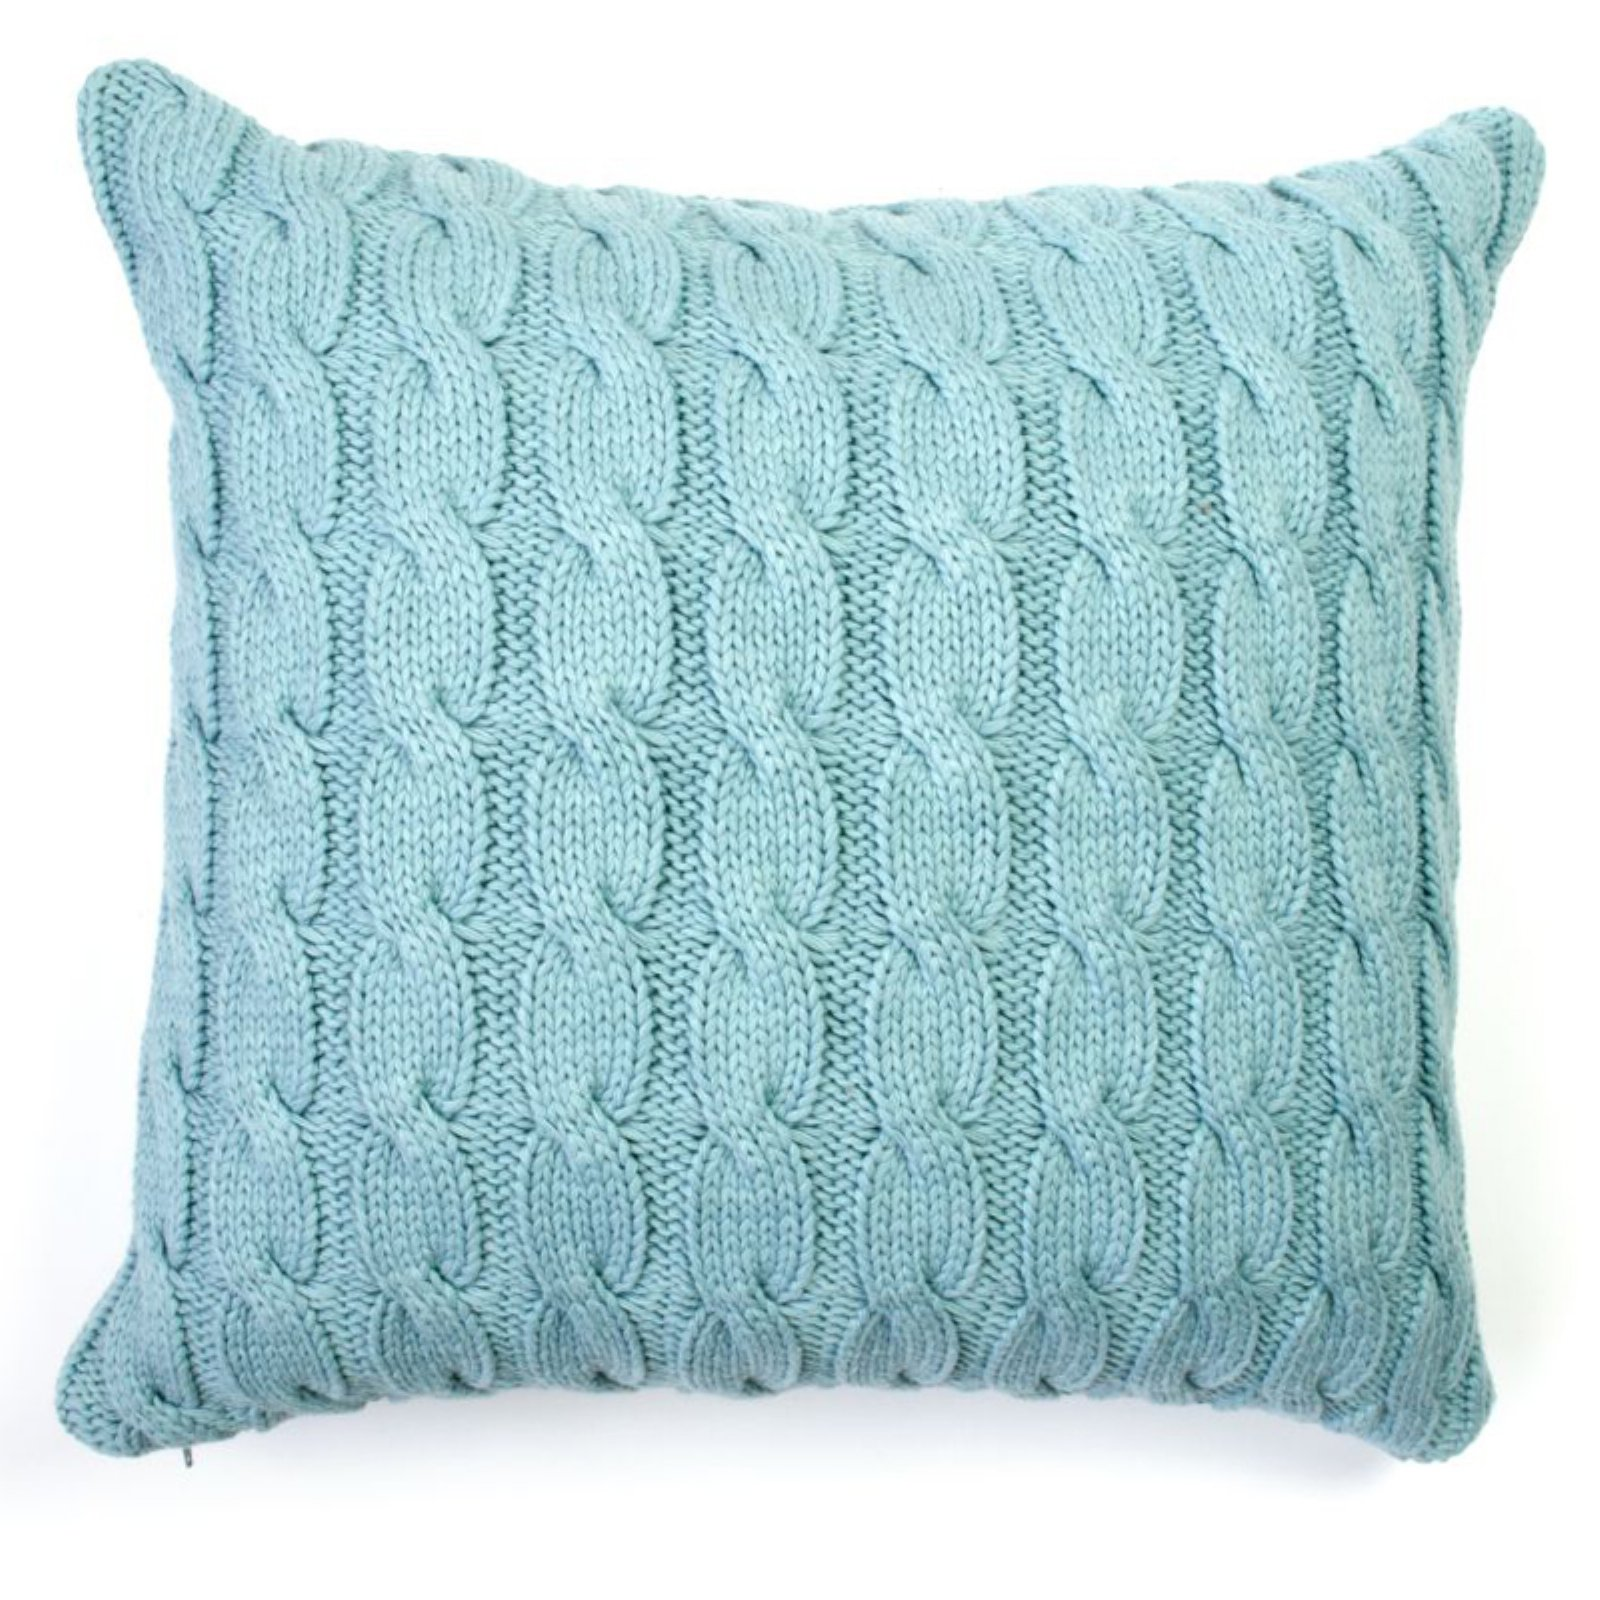 Darzzi Big Cable Decorative Pillow